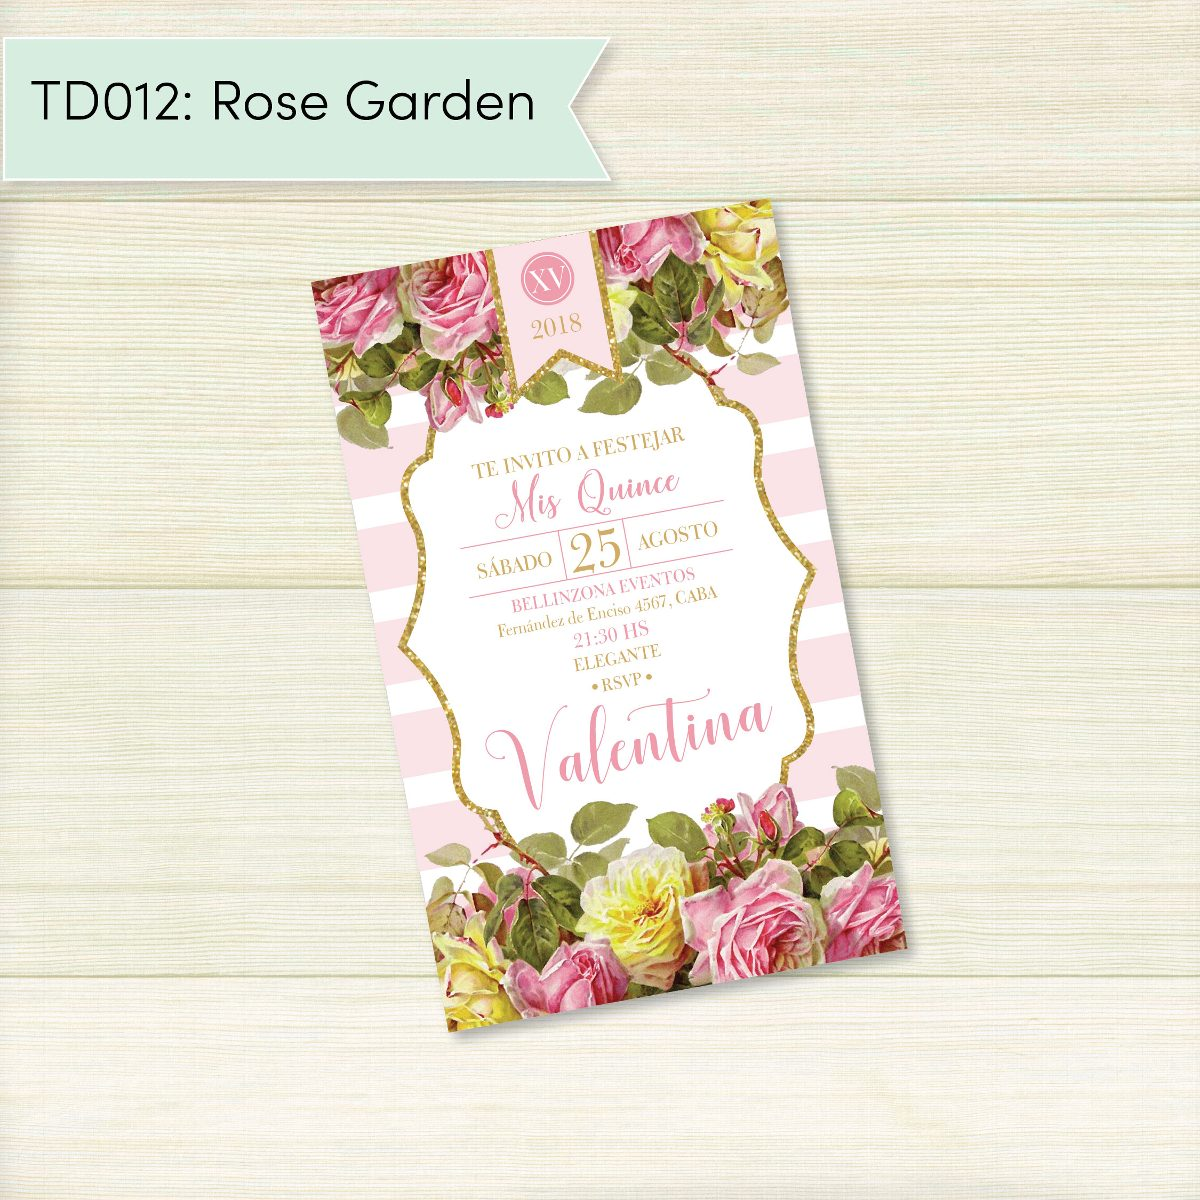 Invitación digital TD012 (Rose Garden)